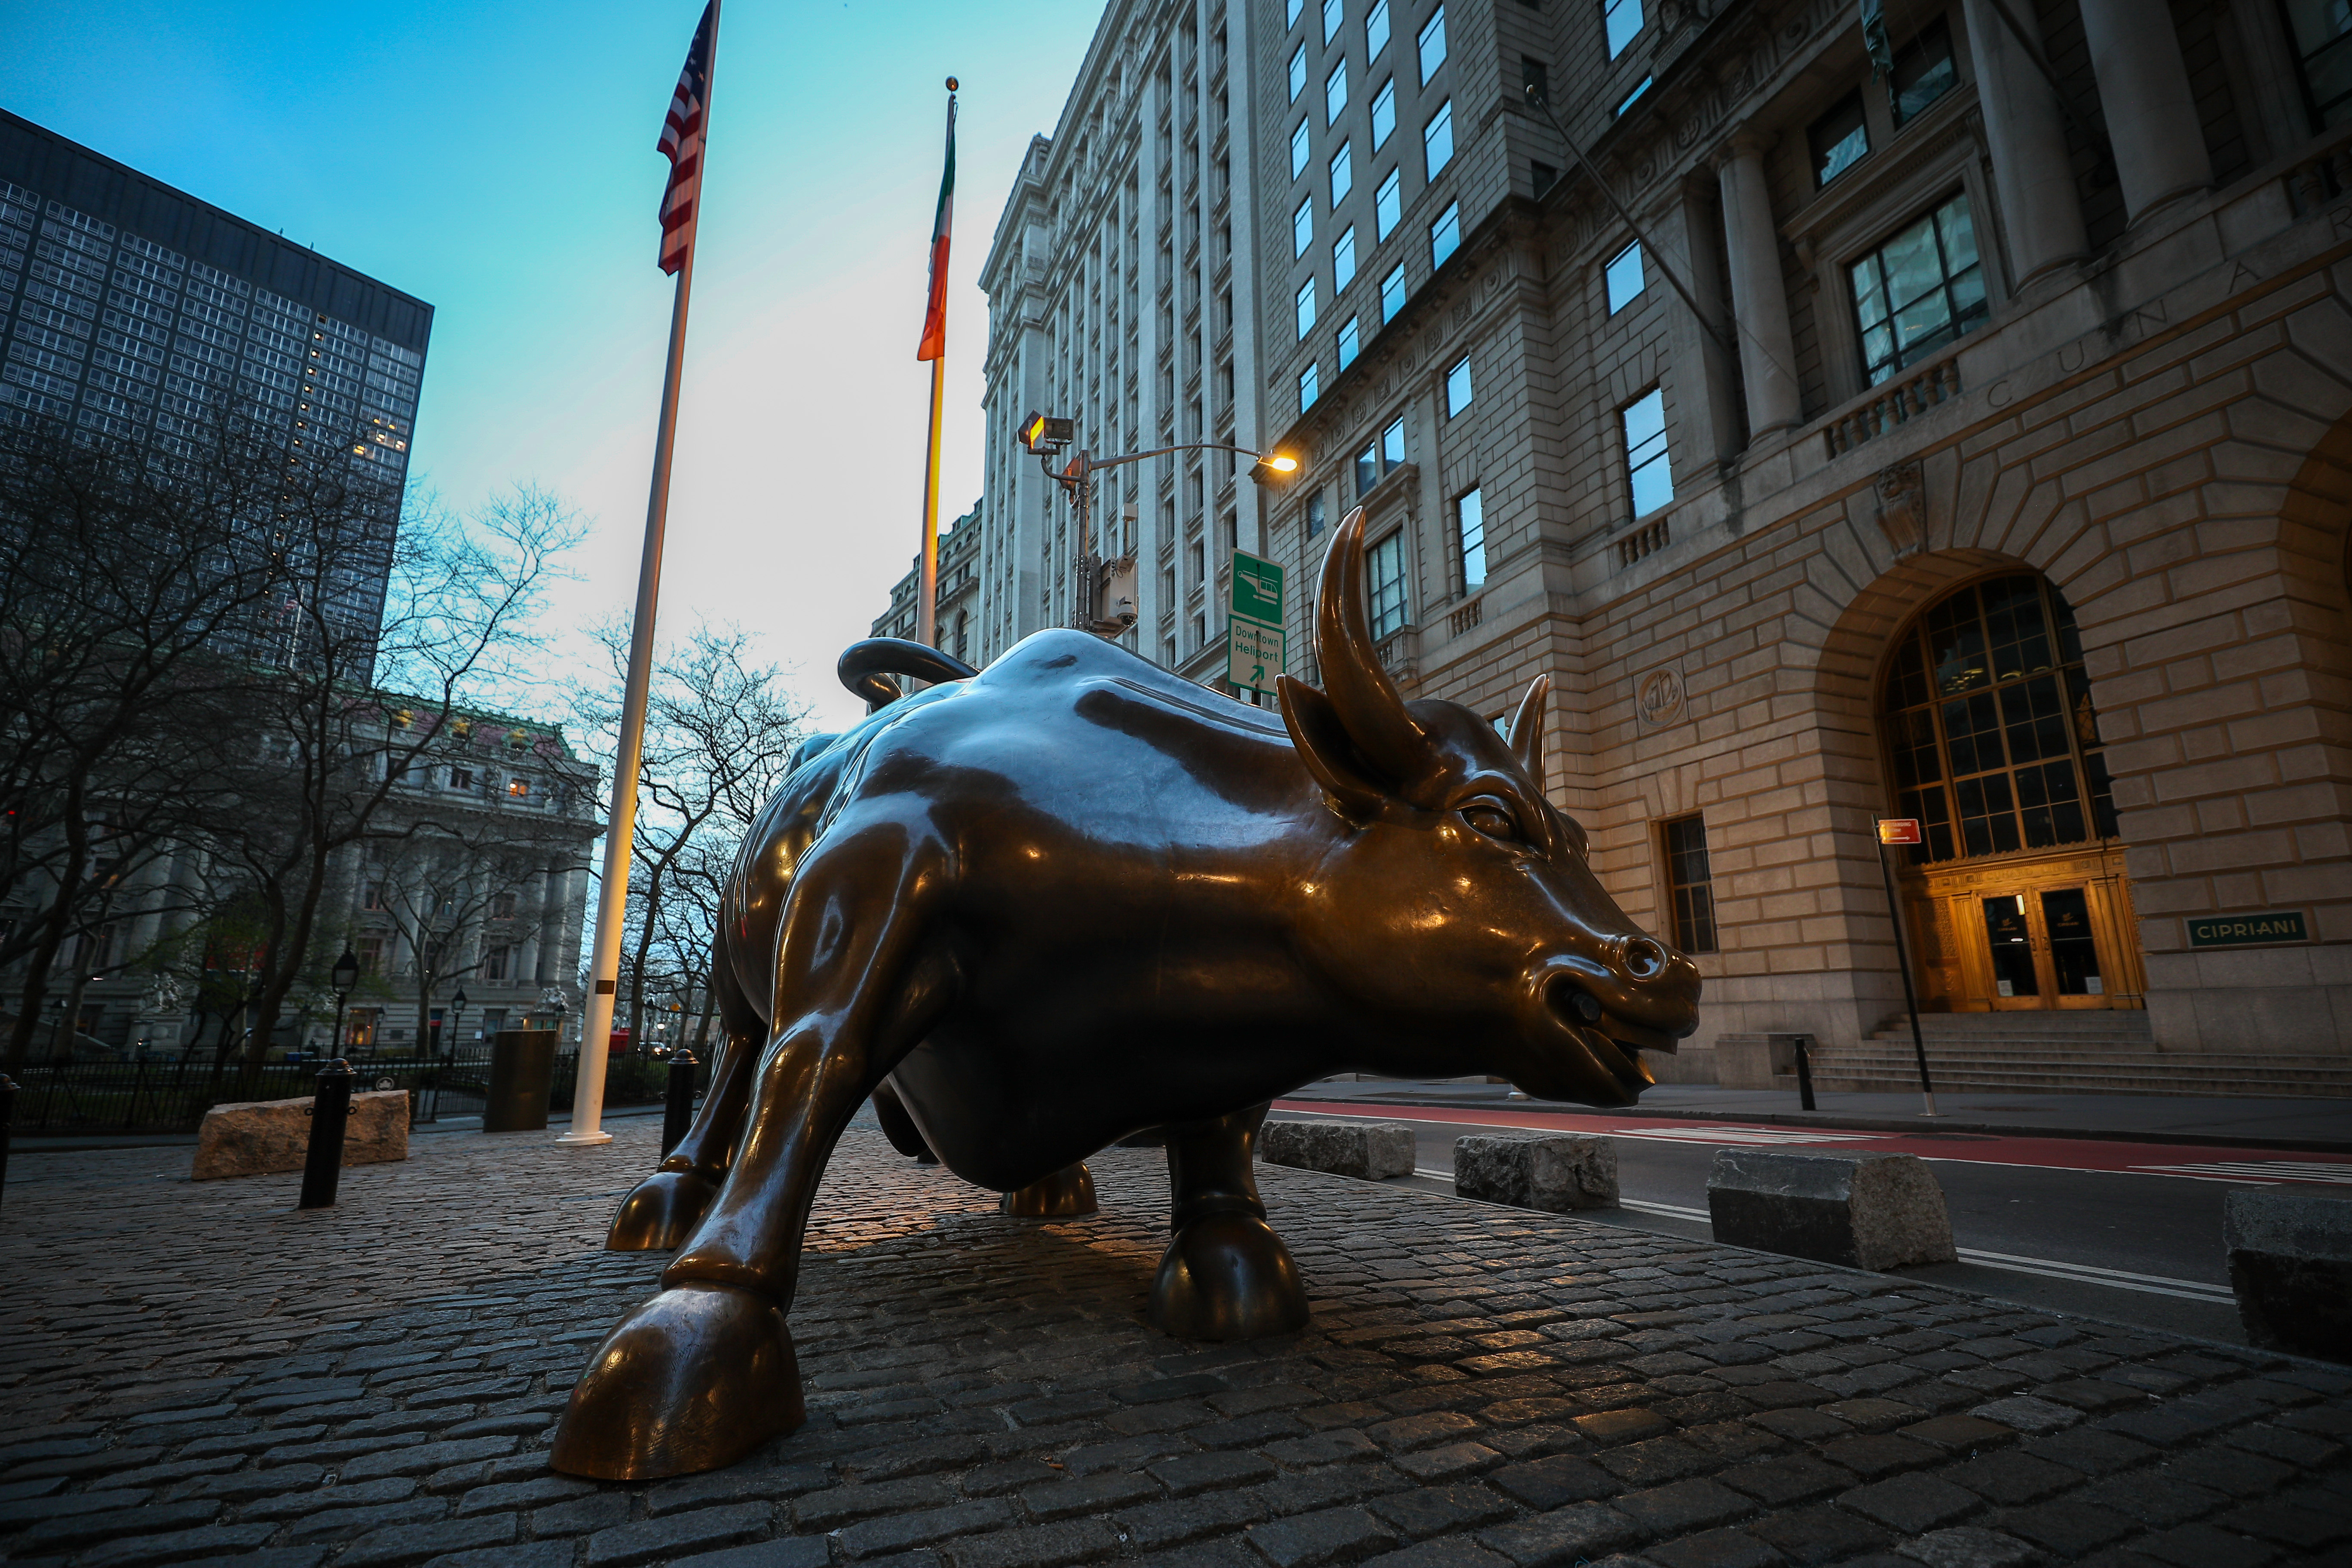 The famous Charging Bull Statue is seen lonely at the Financial District in New York.